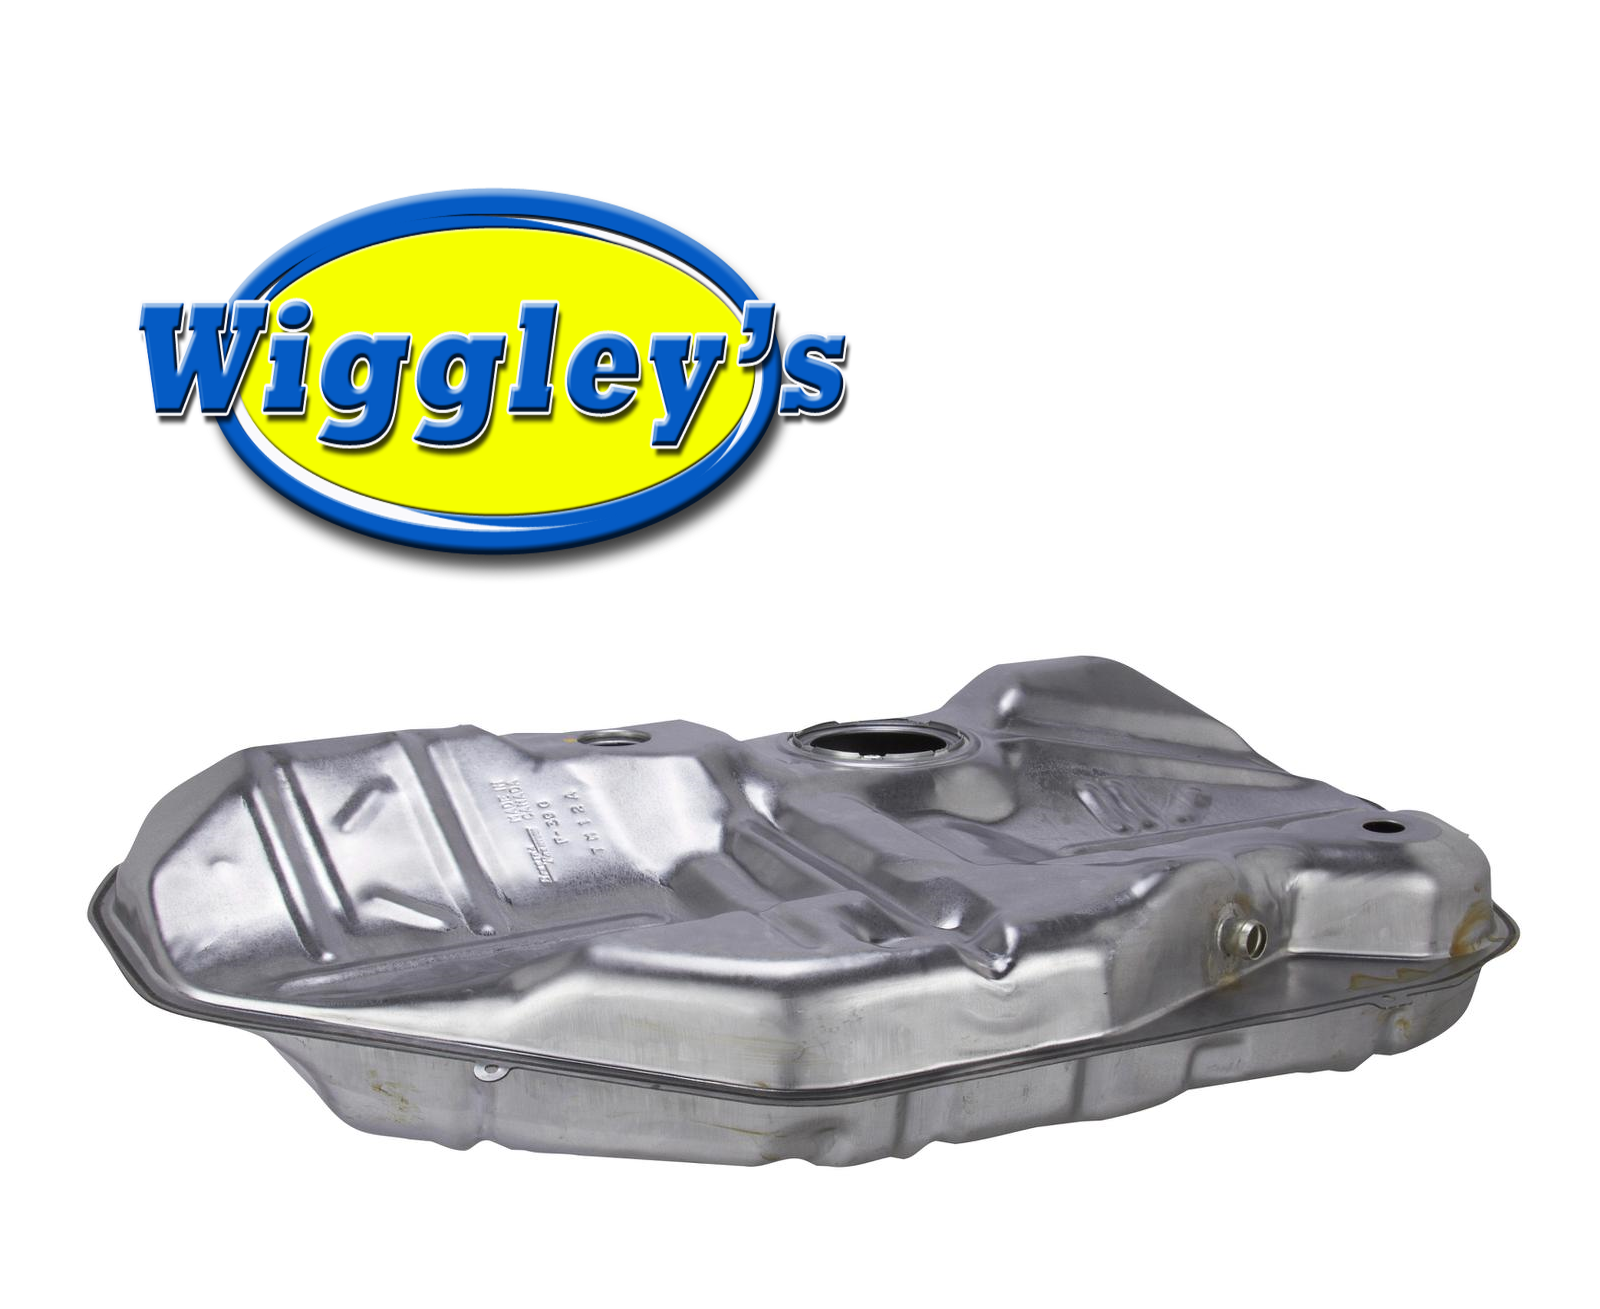 FUEL TANK IF39G, F39G FOR 00 01 02 03 04 05 FORD TAURUS MERCURY SABLE V6 3.0L